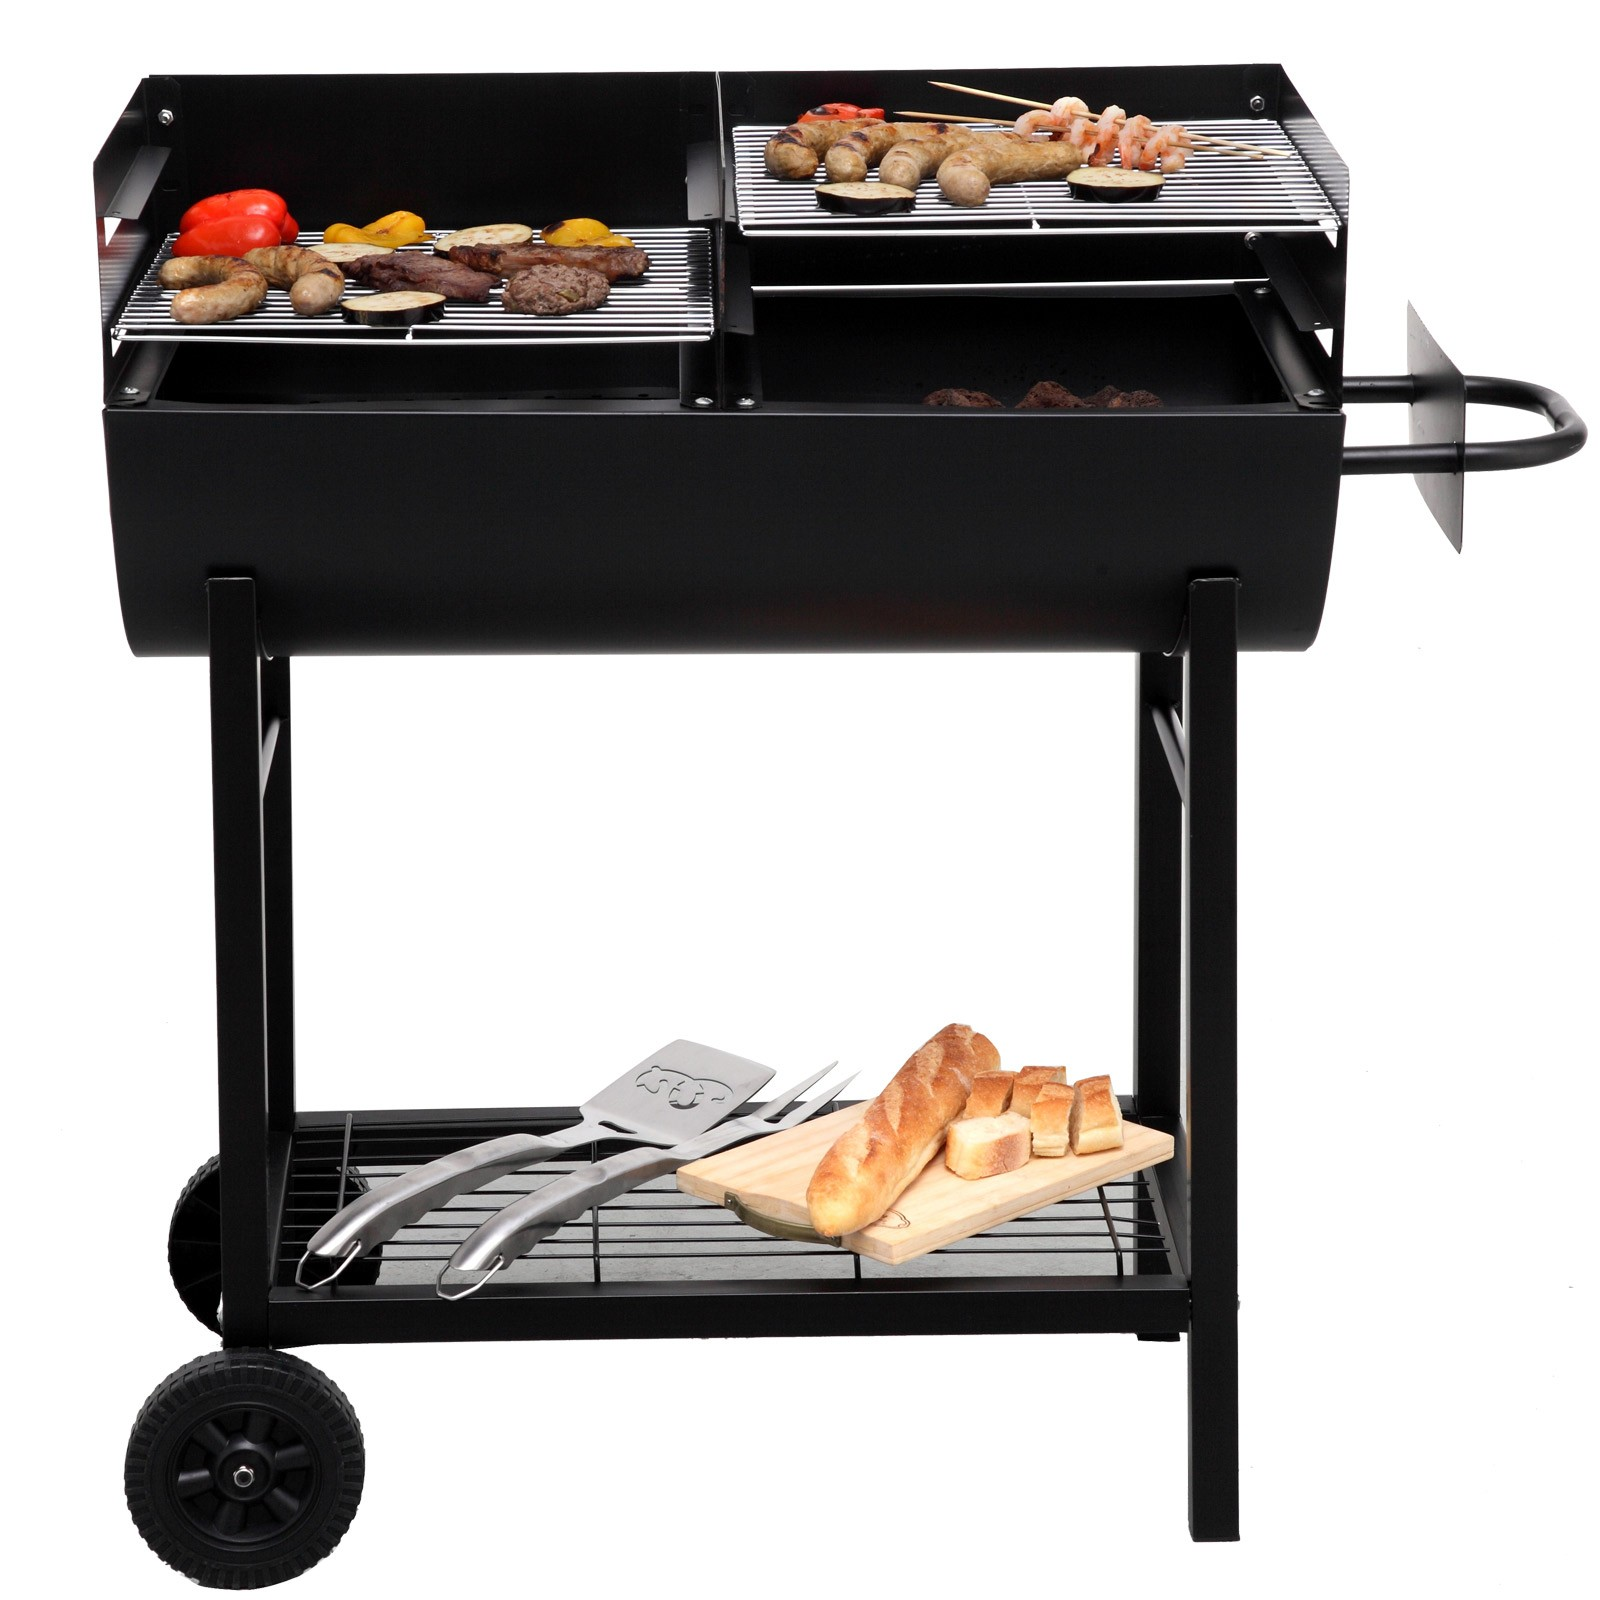 tepro holzkohlengrill grillfass grillwagen kohlengrill lfassgrill grill detroit 4011964010376. Black Bedroom Furniture Sets. Home Design Ideas